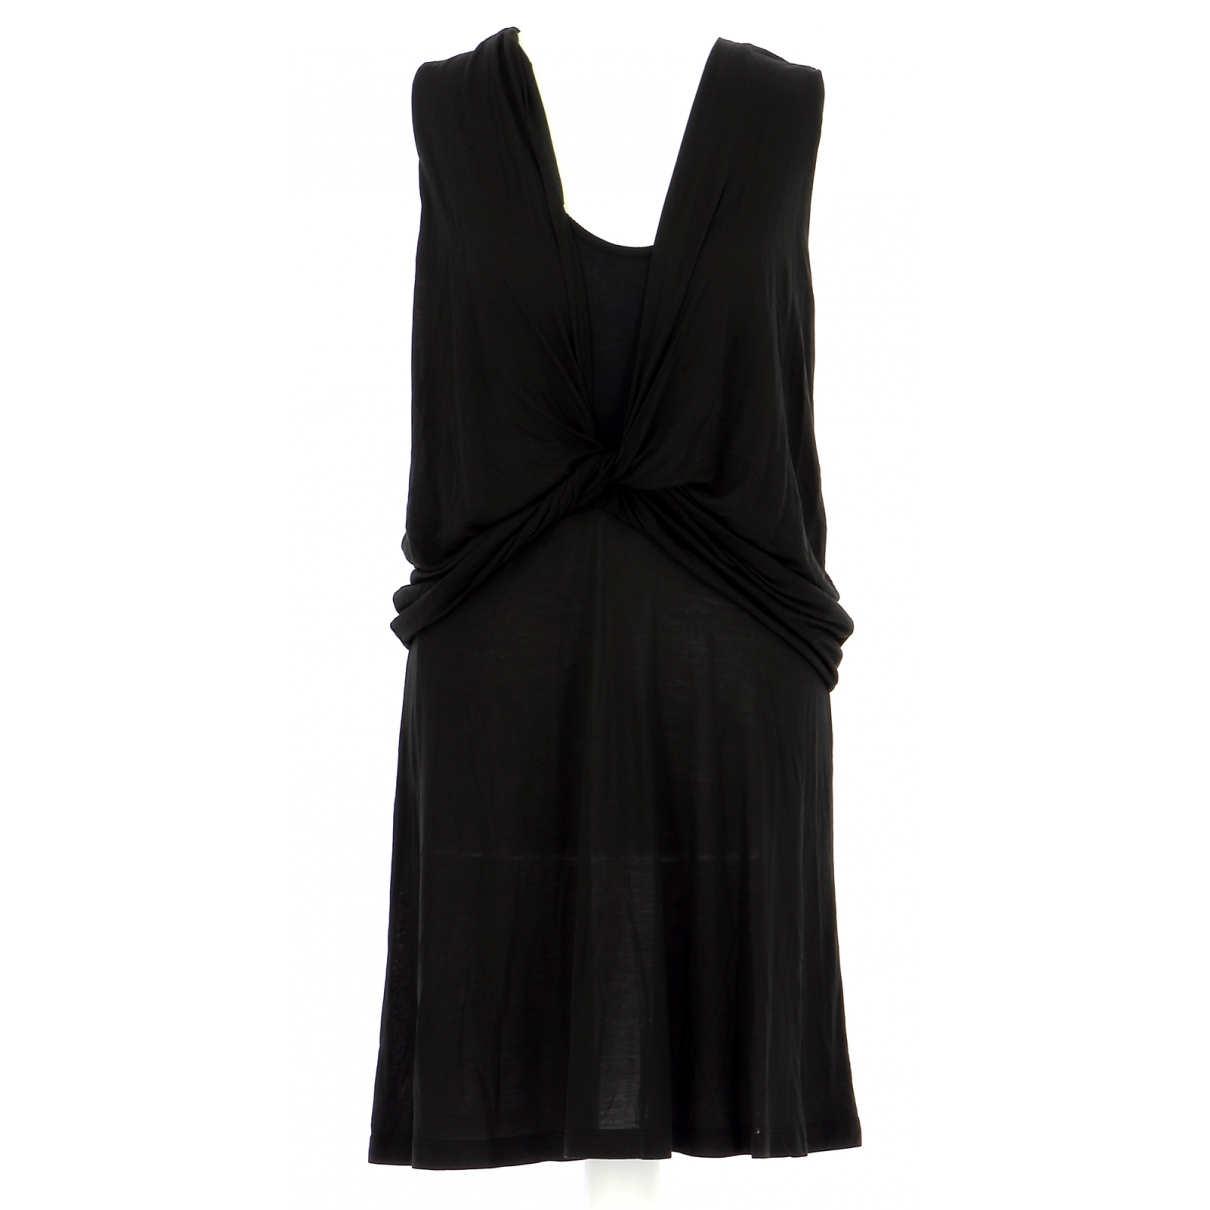 Vanessa Bruno Athe N Black dress for Women 36 FR